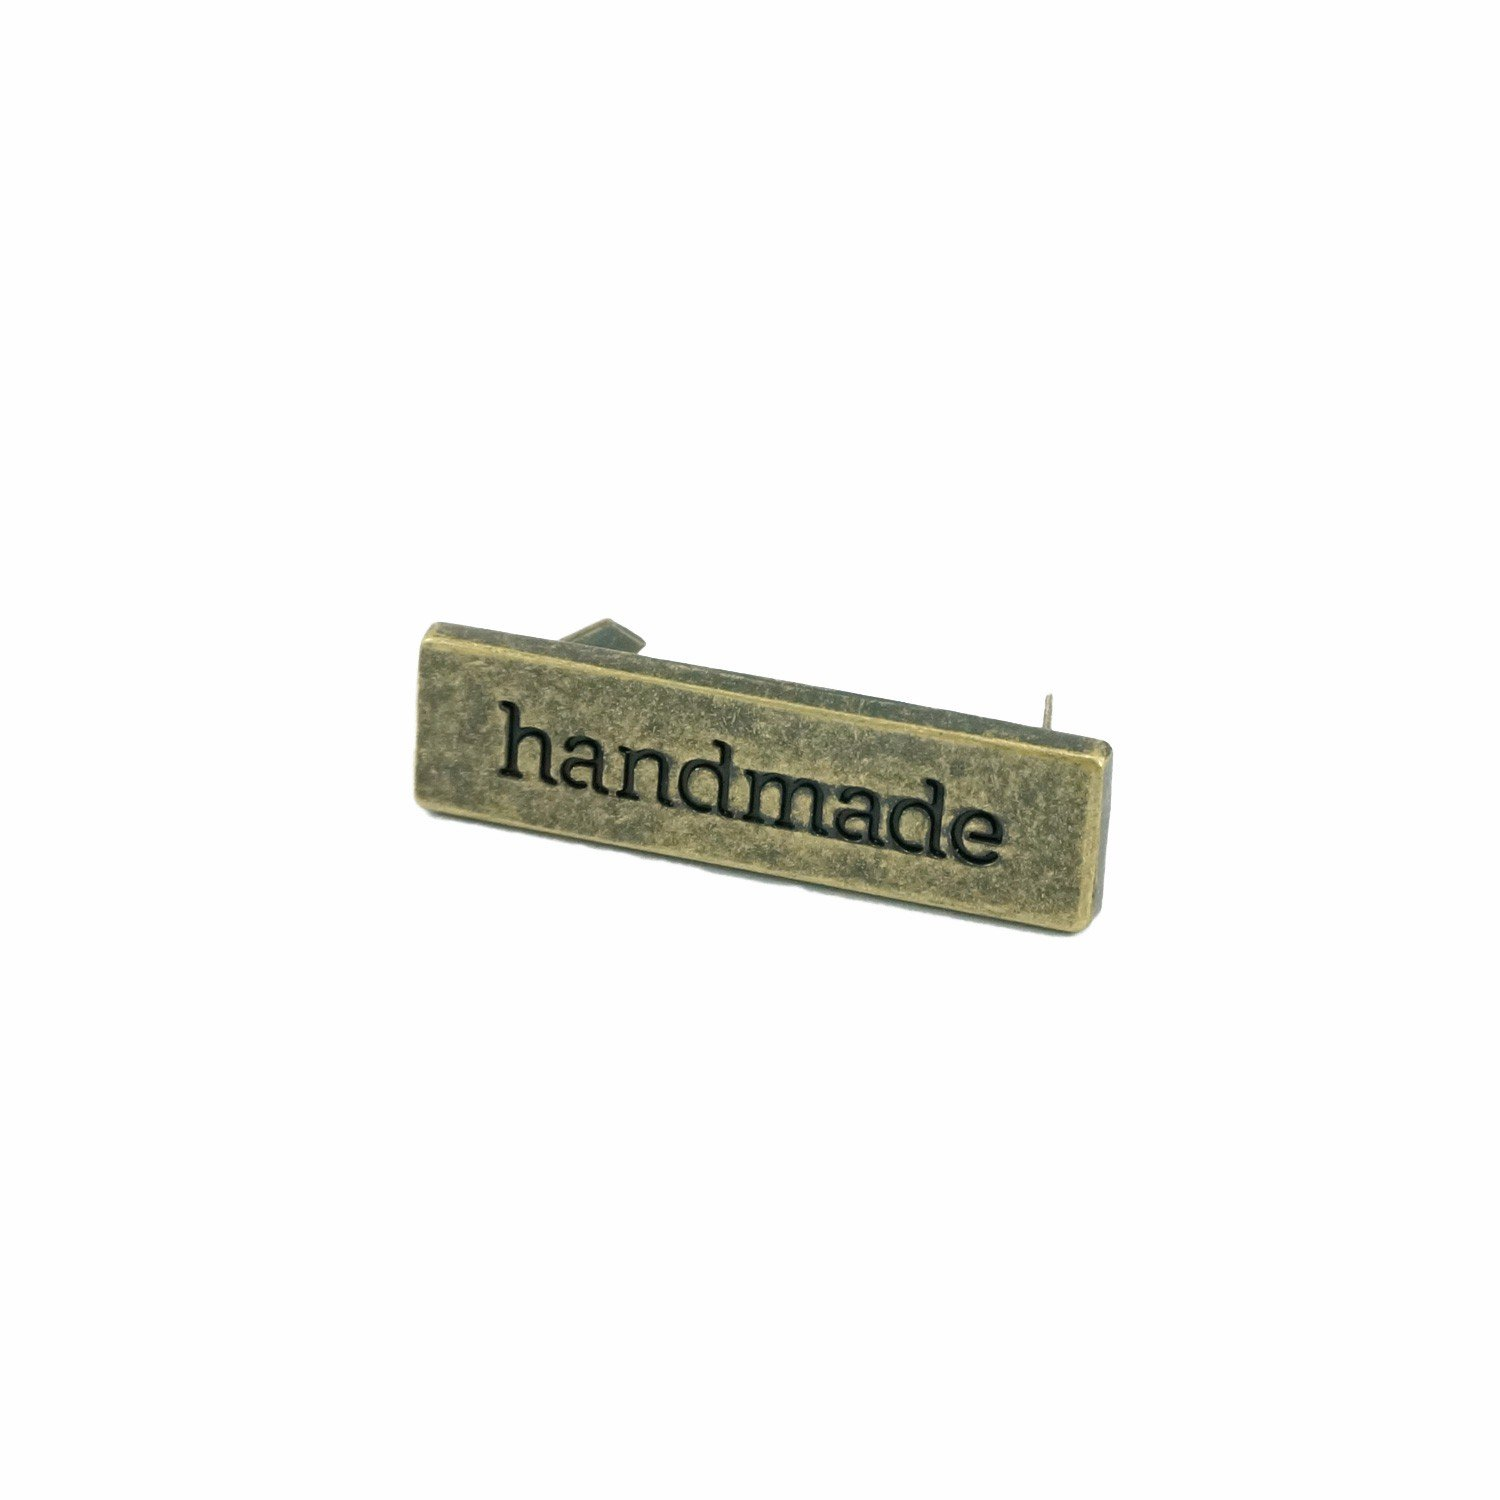 Handmade Metal Bag Label